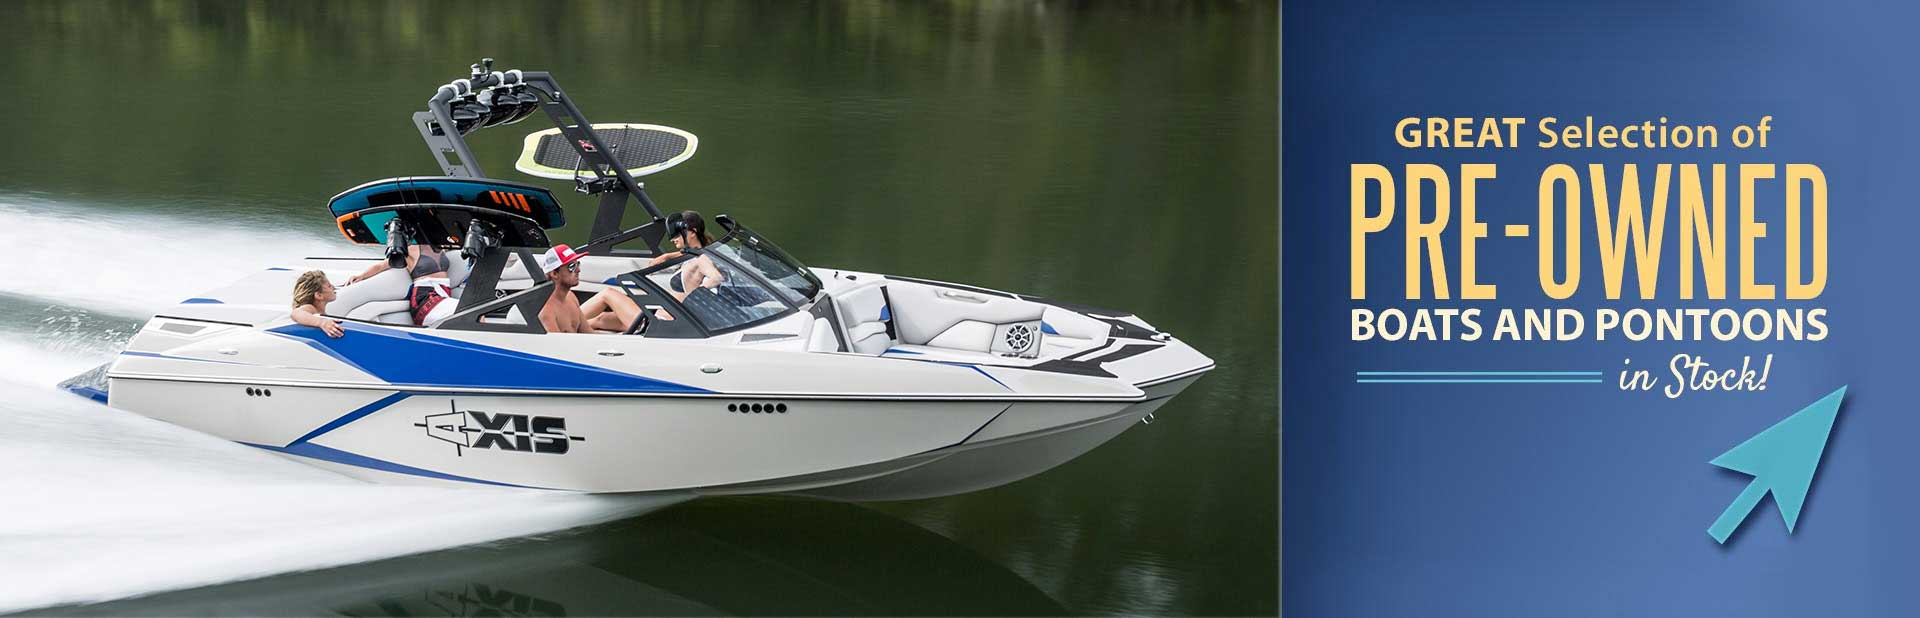 Great Selection of Pre-Owned Boats & Pontoons in Stock: Click here to view the models.